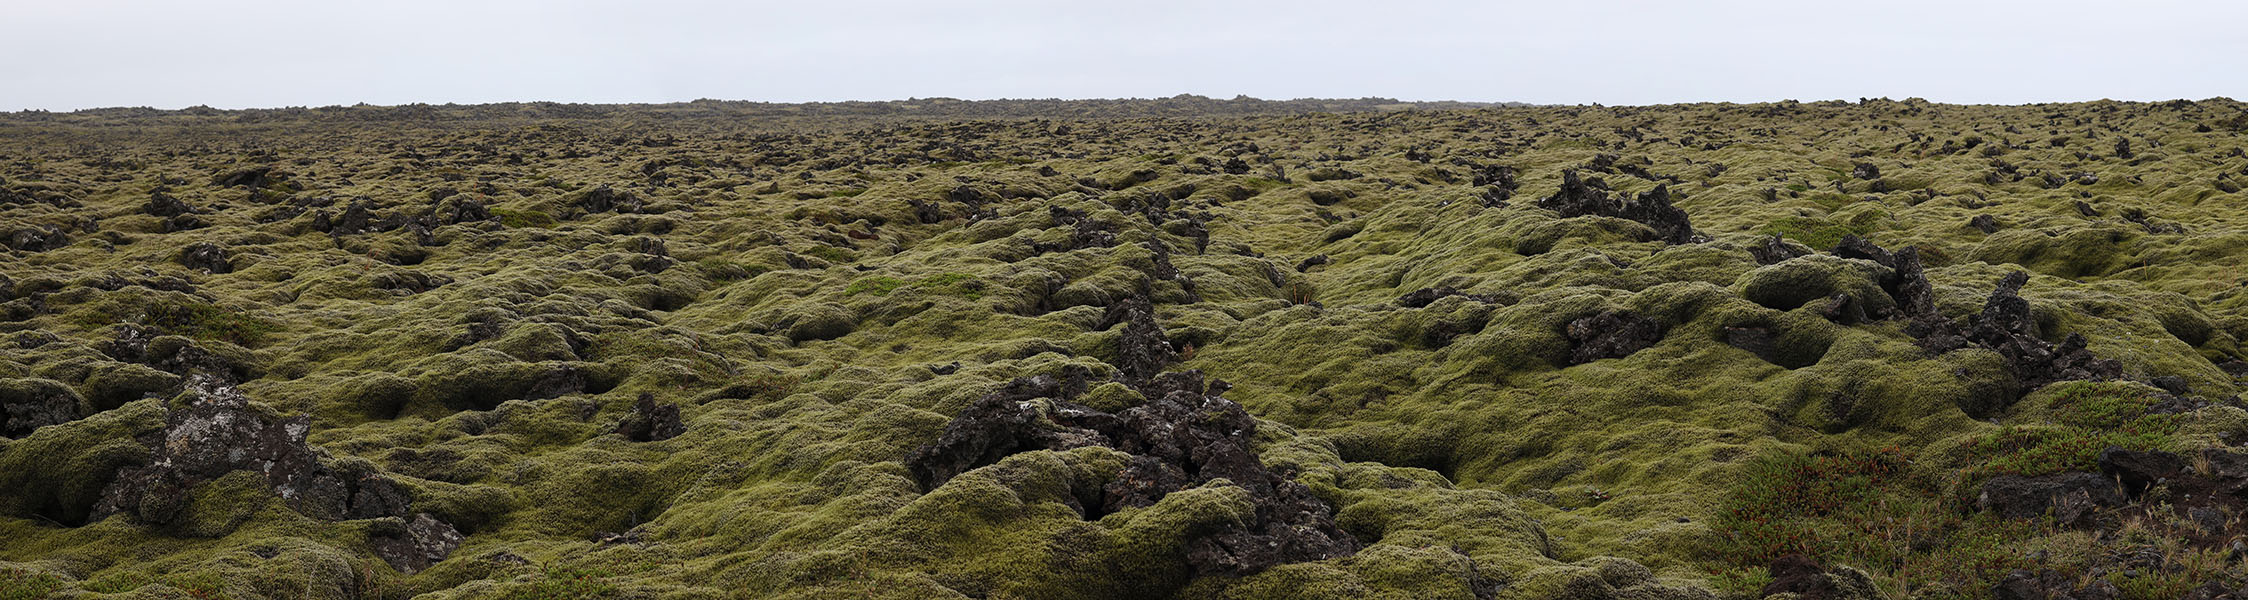 Cloudy Day Photo of Jagged Lava Field in Iceland Covered with Thick Softening Moss.